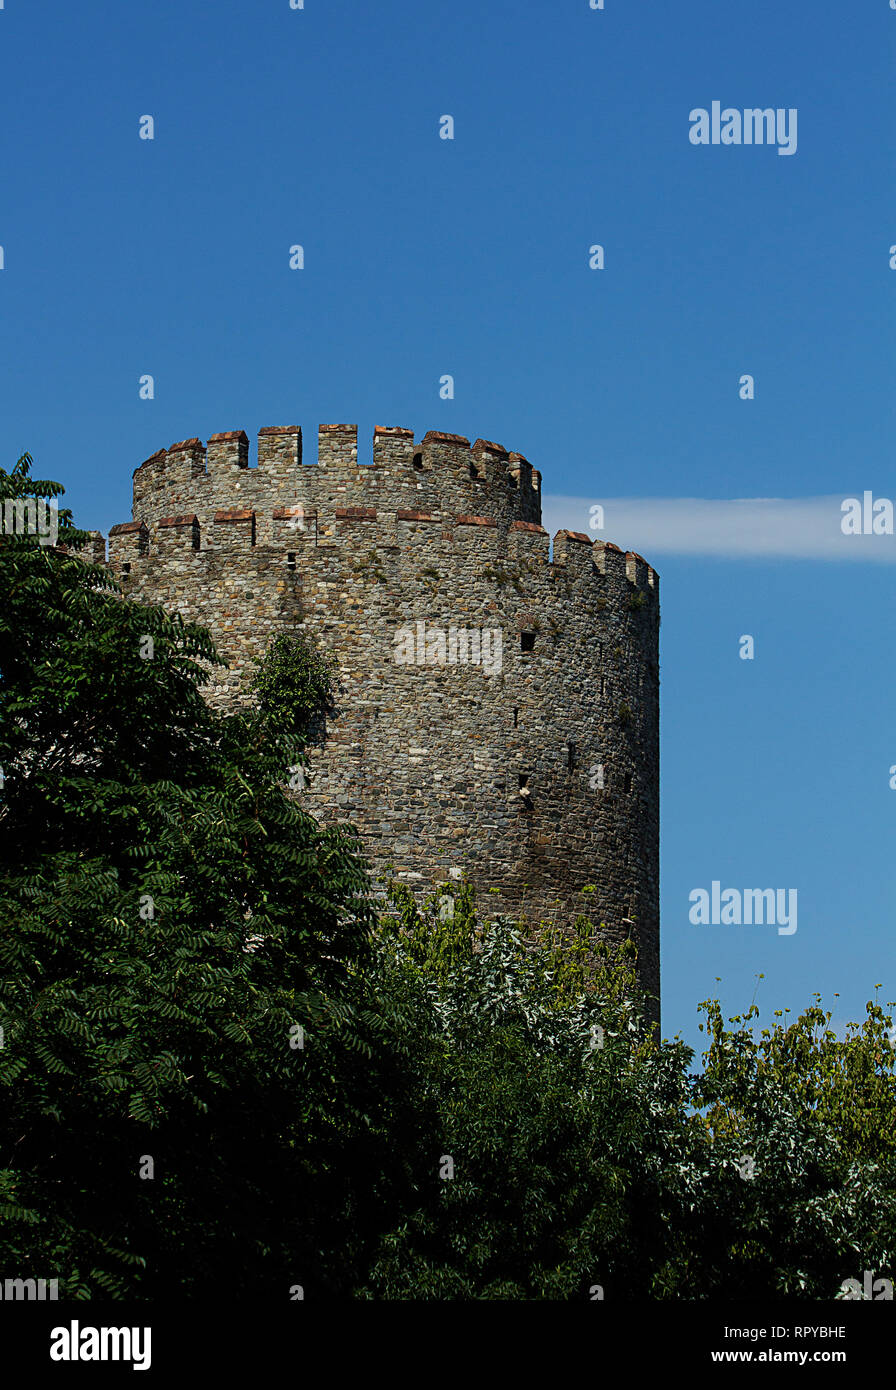 A tower of the Rumelihisar Fortress in Istanbul, Turkey used during the conquest of Constantinopolis. Stock Photo